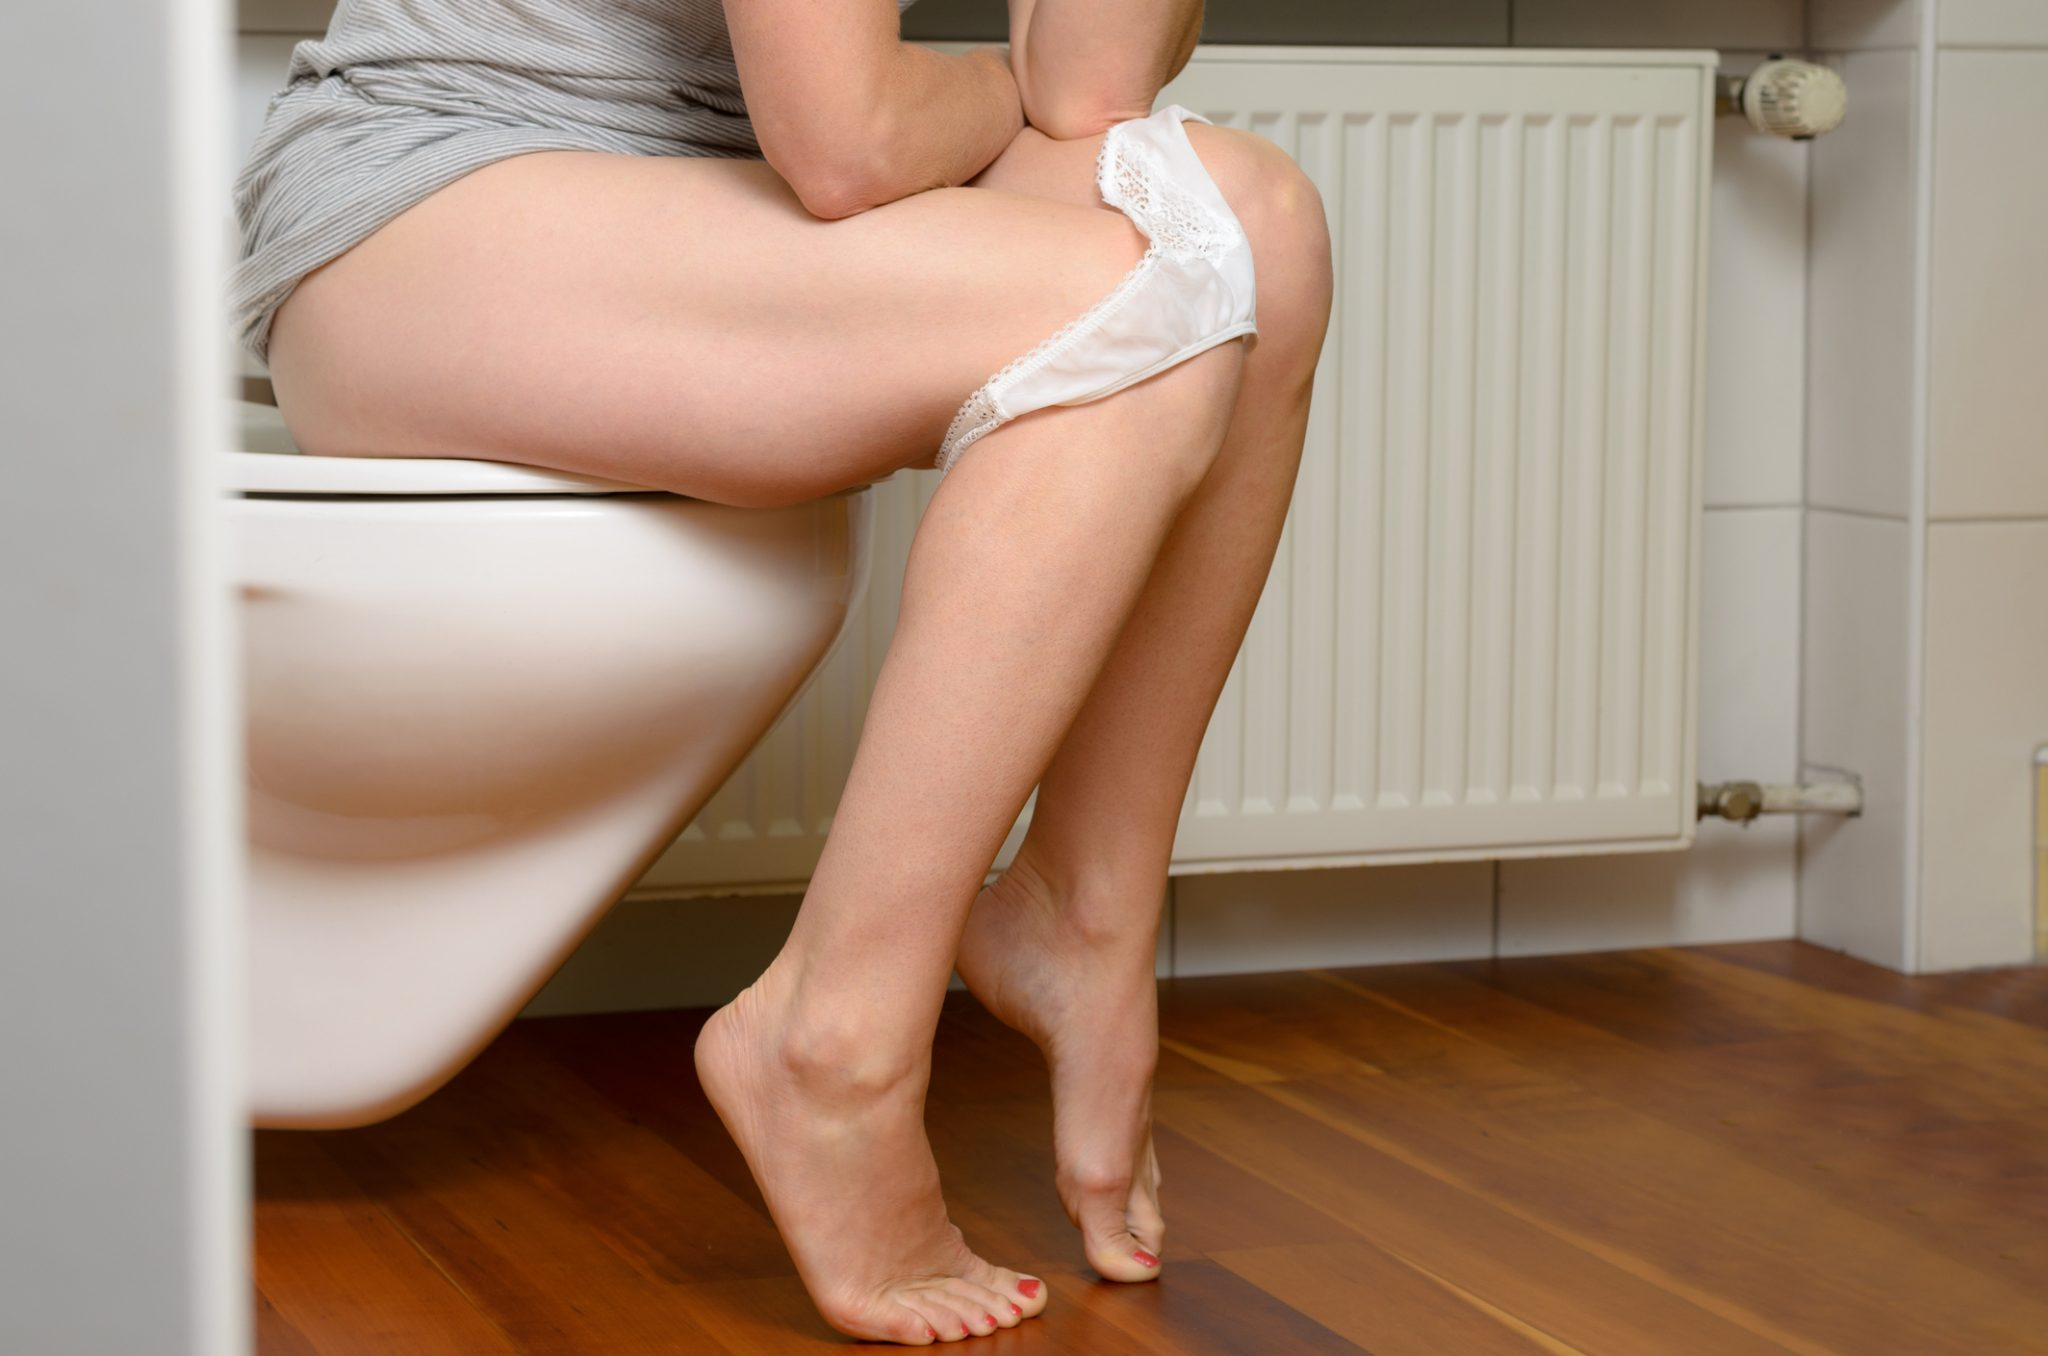 woman pelvic exercise on a toilet - kegel